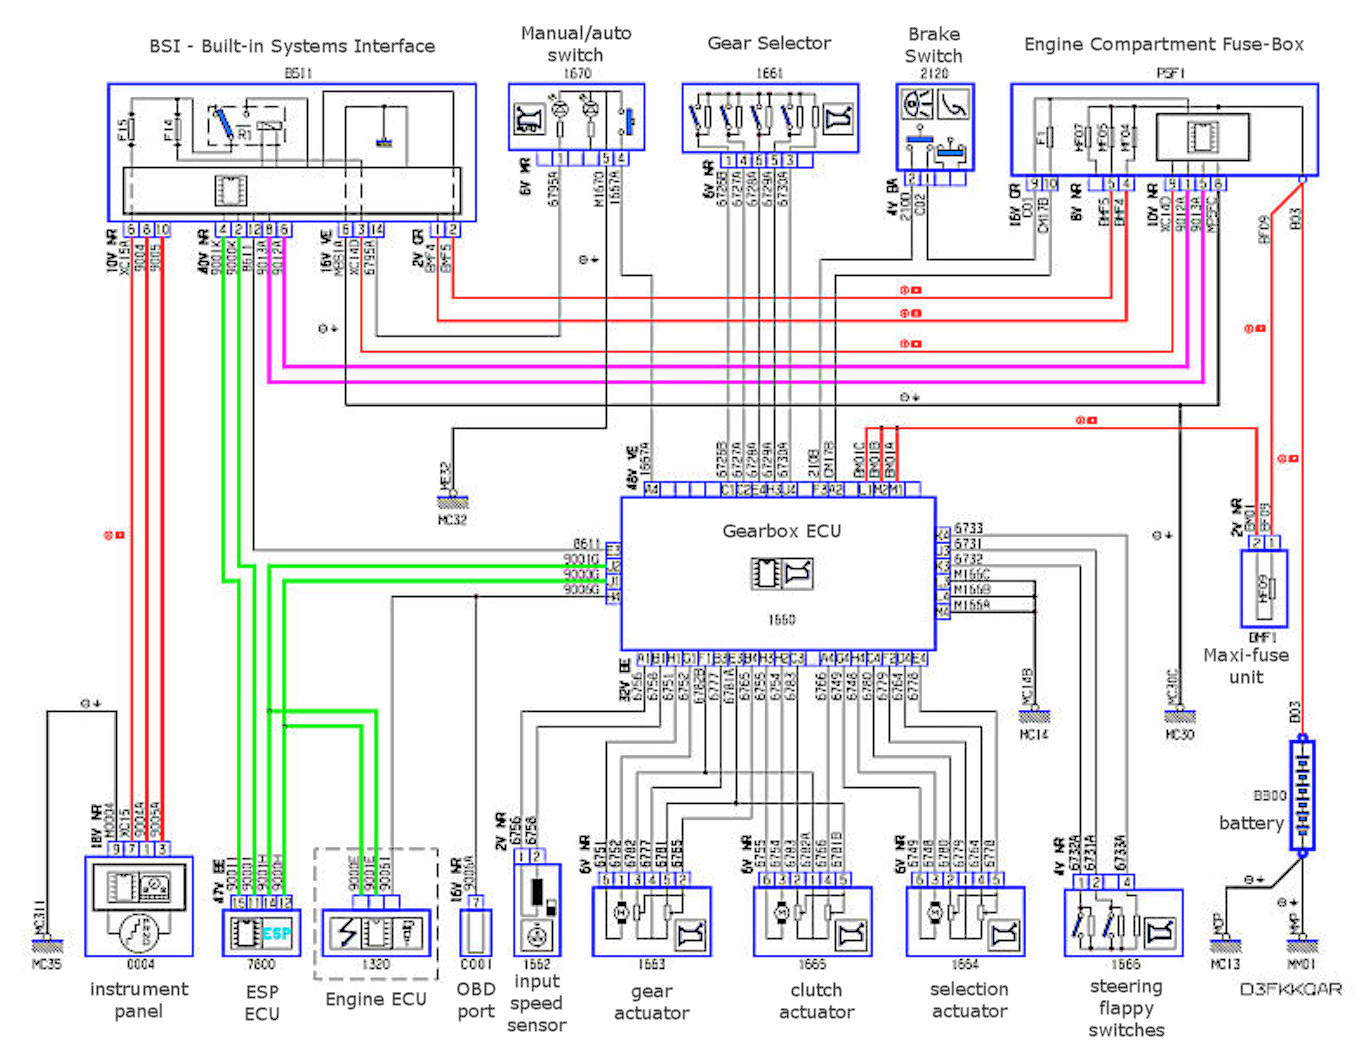 citroen engine wiring diagram | online wiring diagram harley fog lights wiring diagram #13